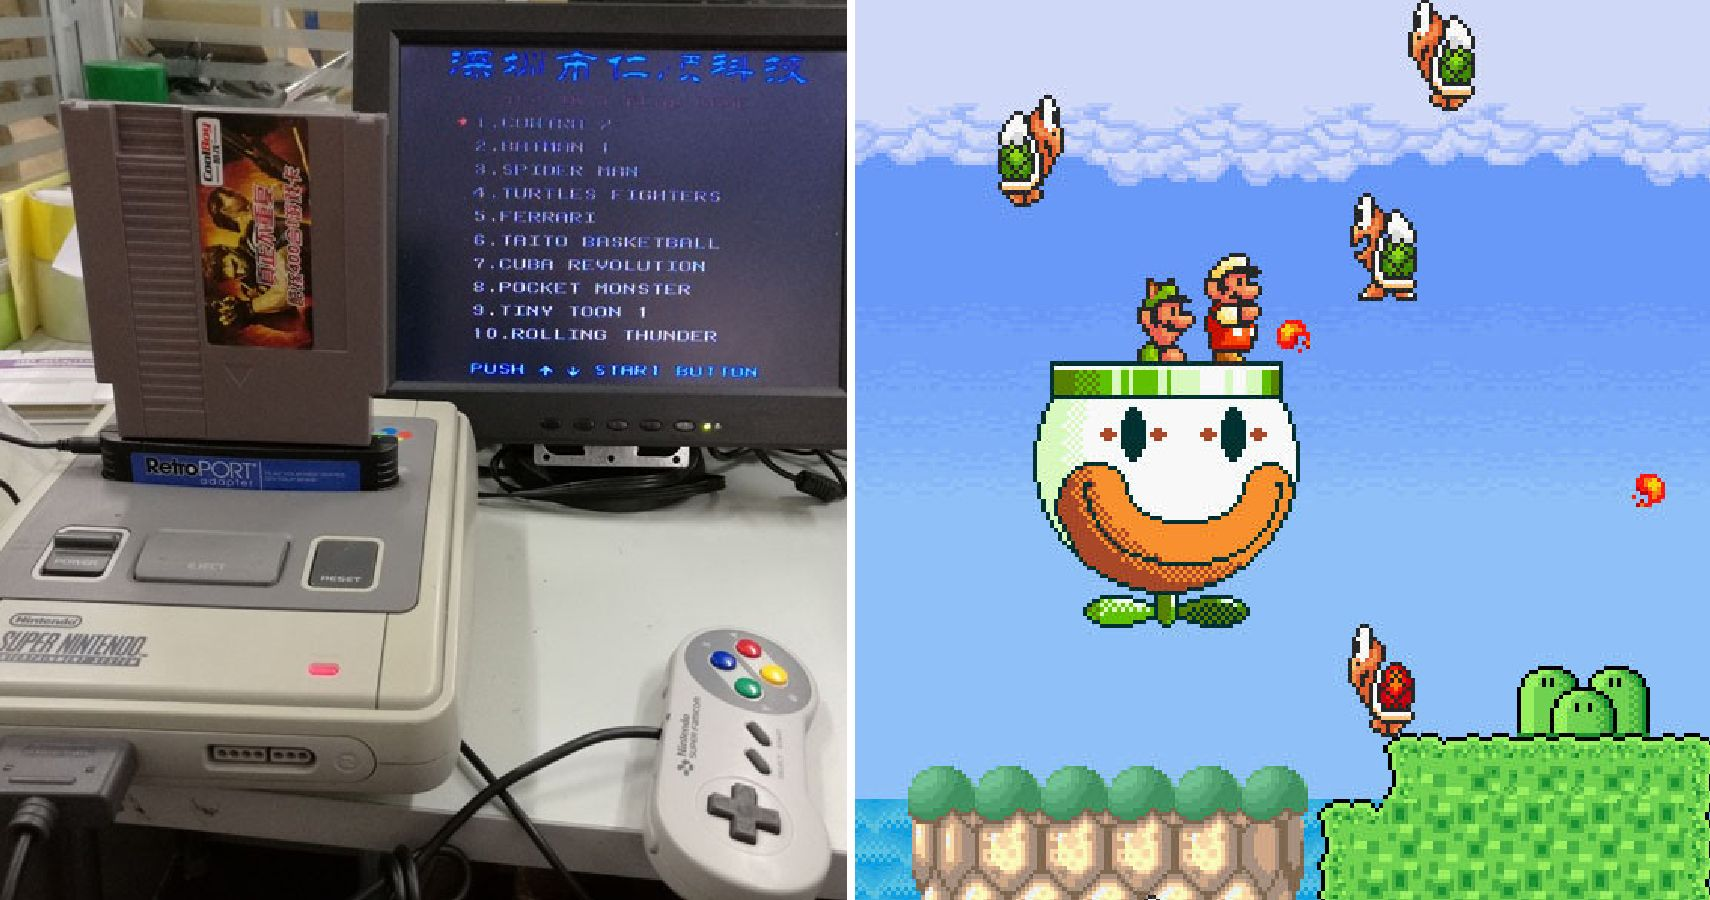 25 Cool Things Casuals Had No Idea Their Old Game Consoles